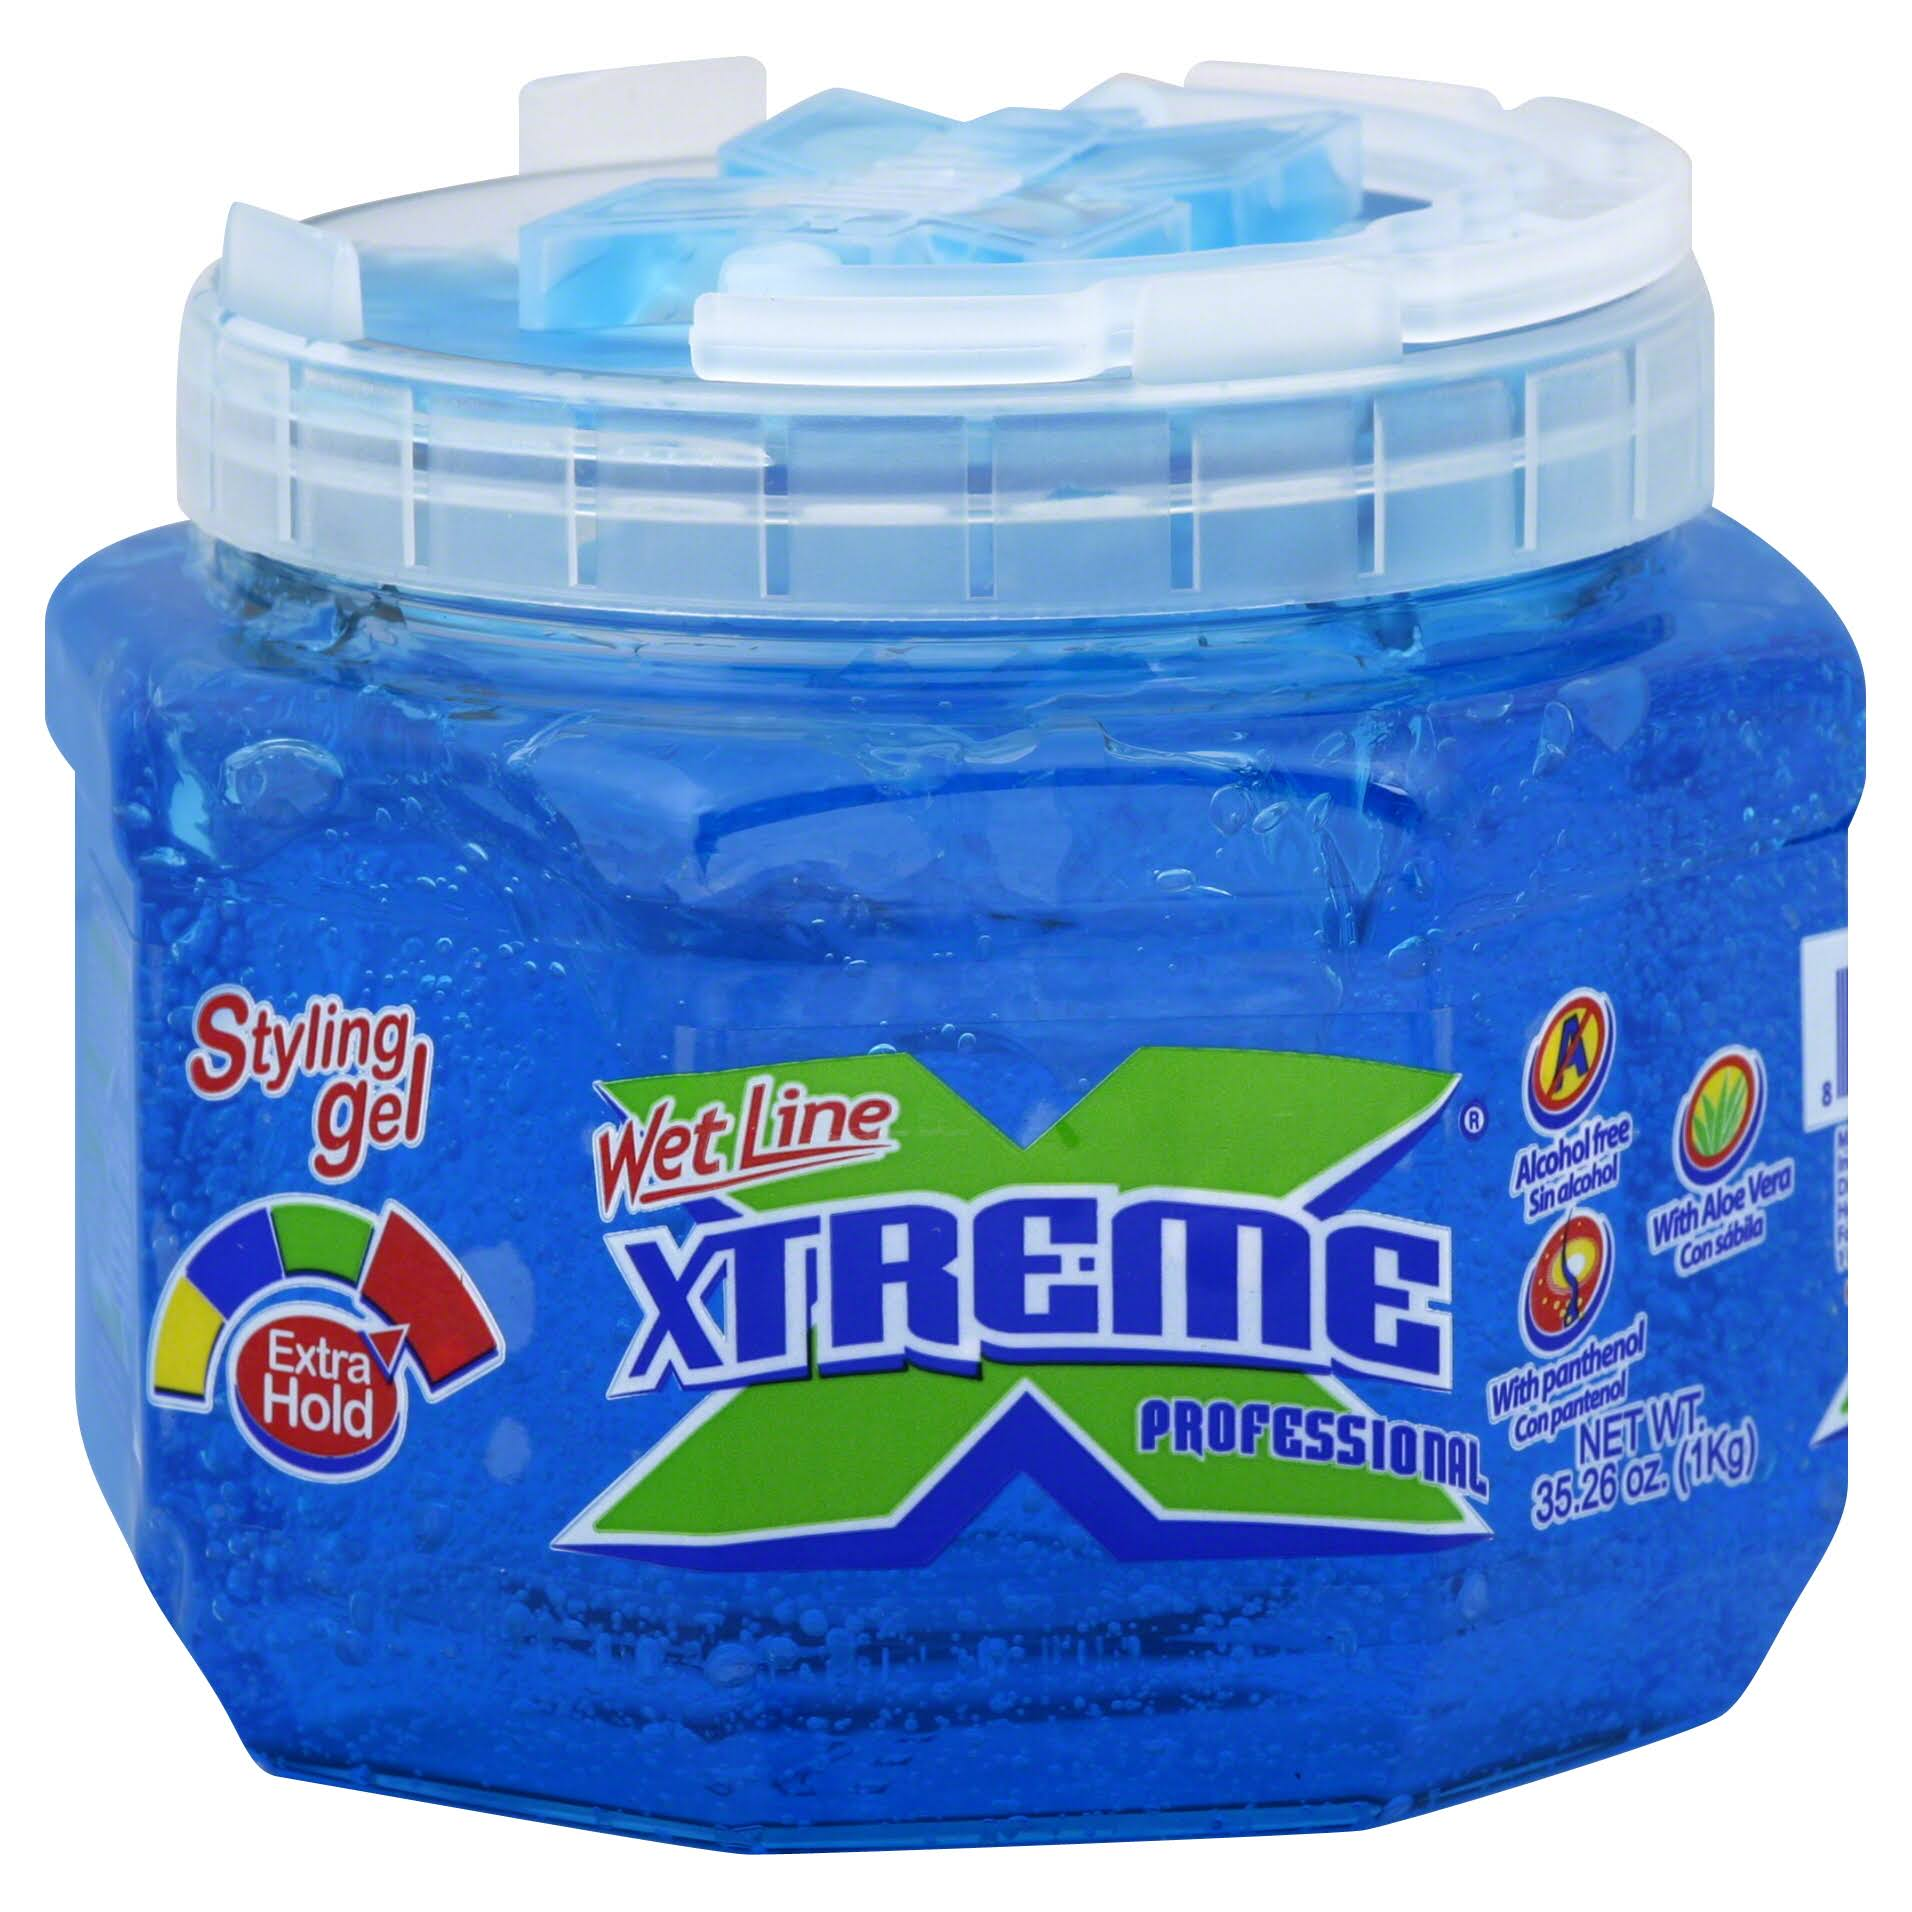 Wet Line Xtreme Professional Styling Gel - Extra Hold, Blue, 35.26oz